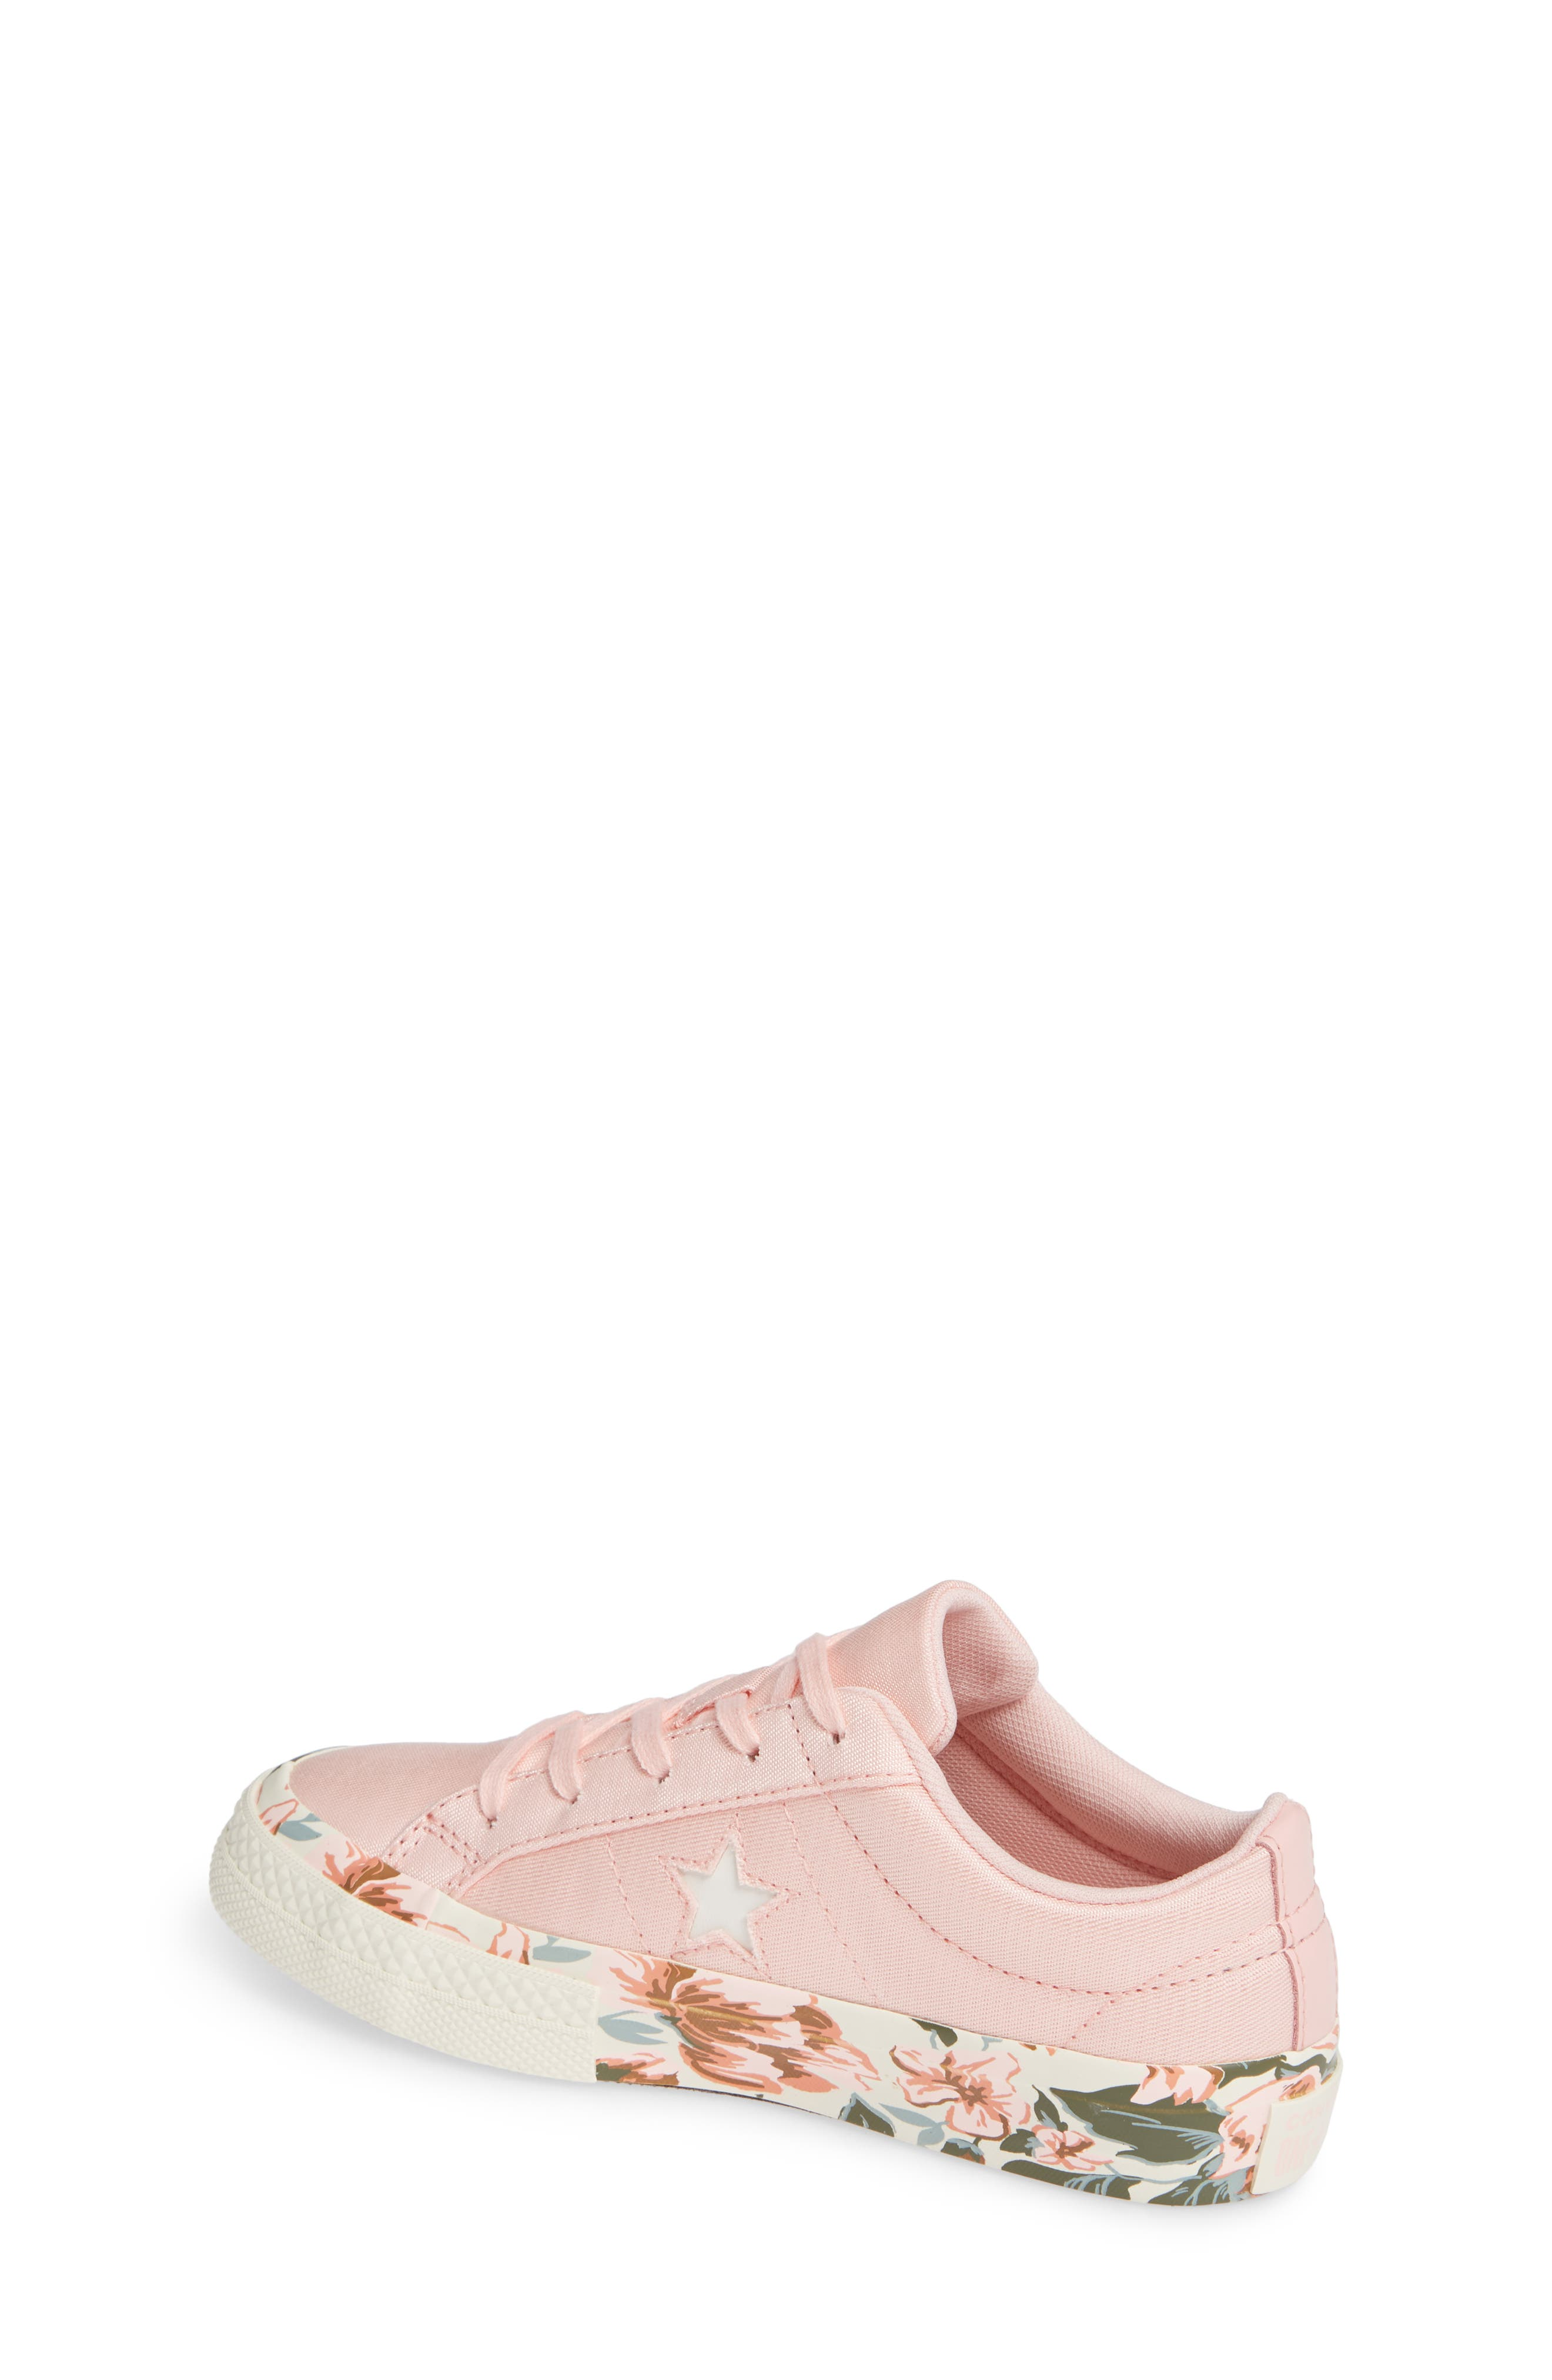 One Star Floral Sneaker,                             Alternate thumbnail 2, color,                             690